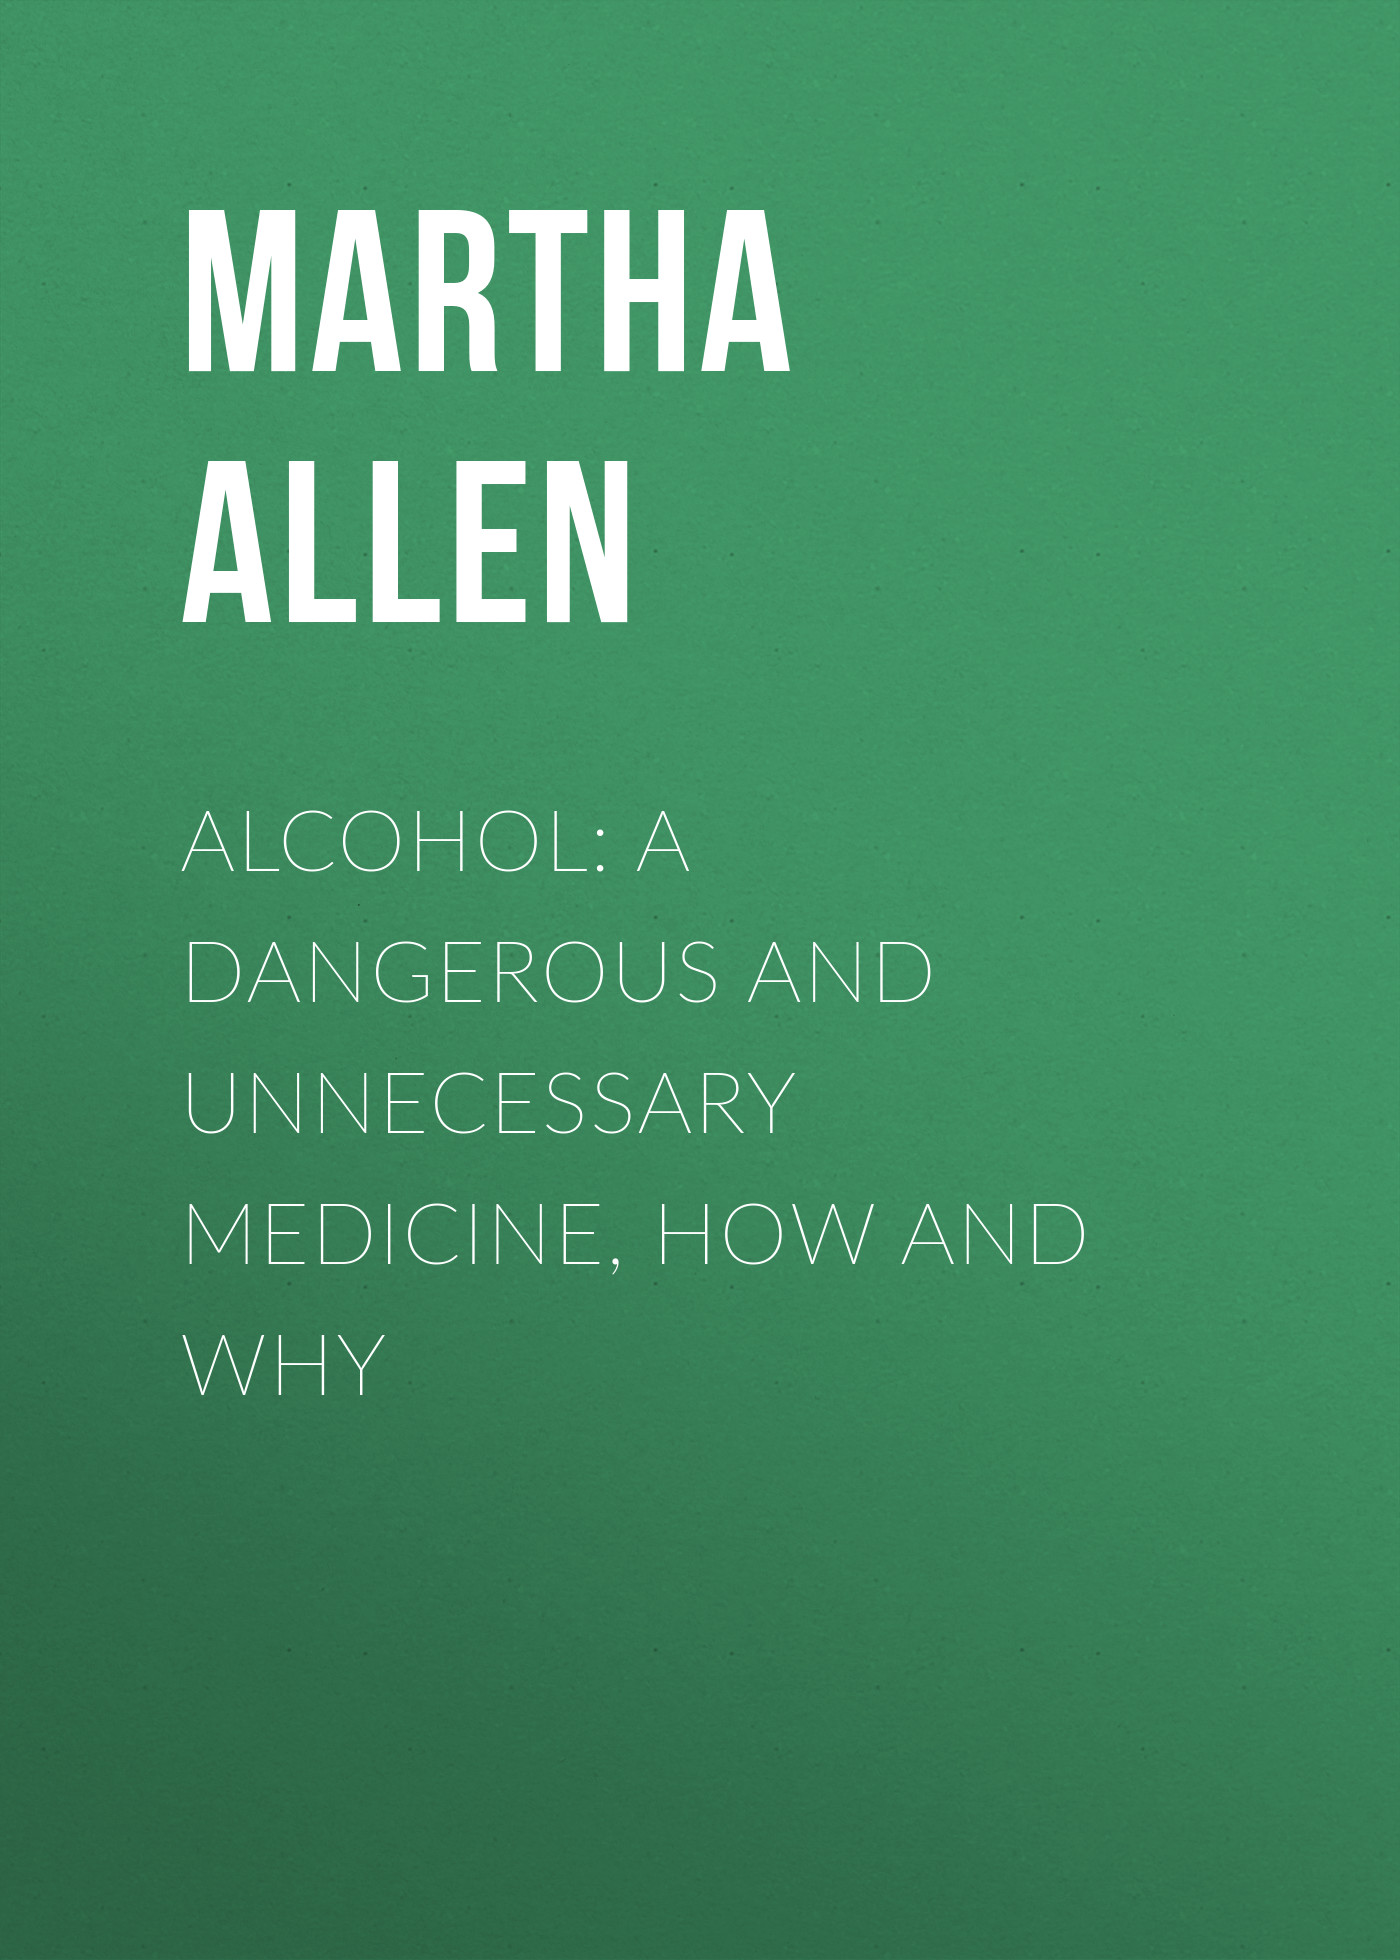 Allen Martha Meir Alcohol: A Dangerous and Unnecessary Medicine, How and Why allen martha meir alcohol a dangerous and unnecessary medicine how and why